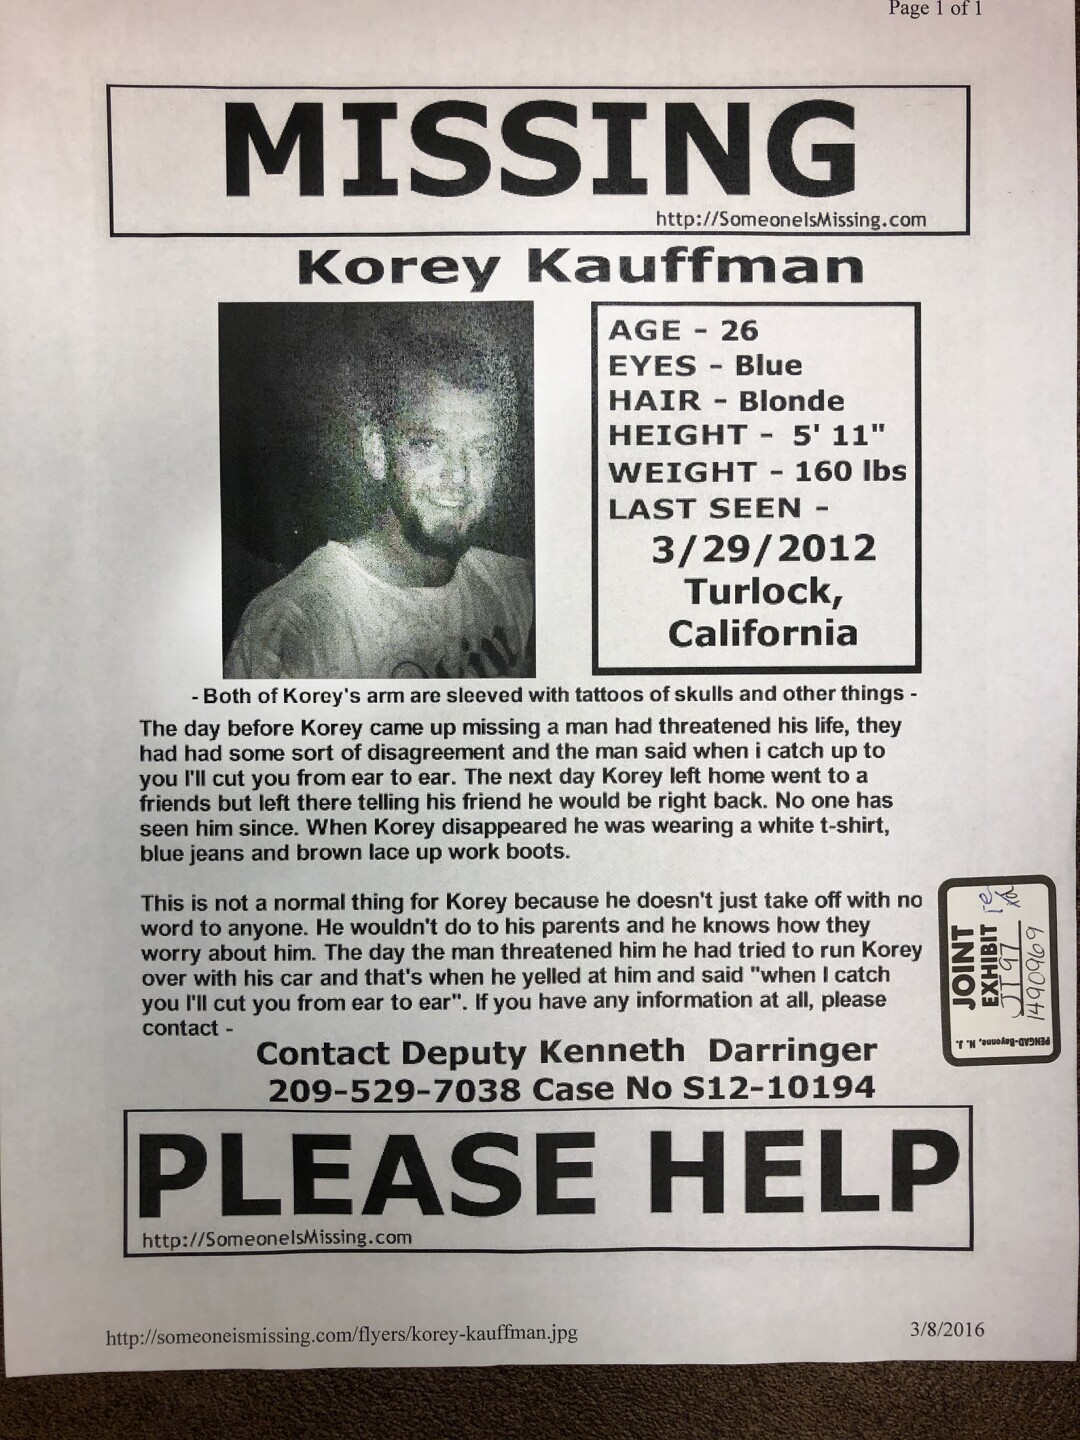 A flier for Korey Kauffman, who went missing in March 2012.